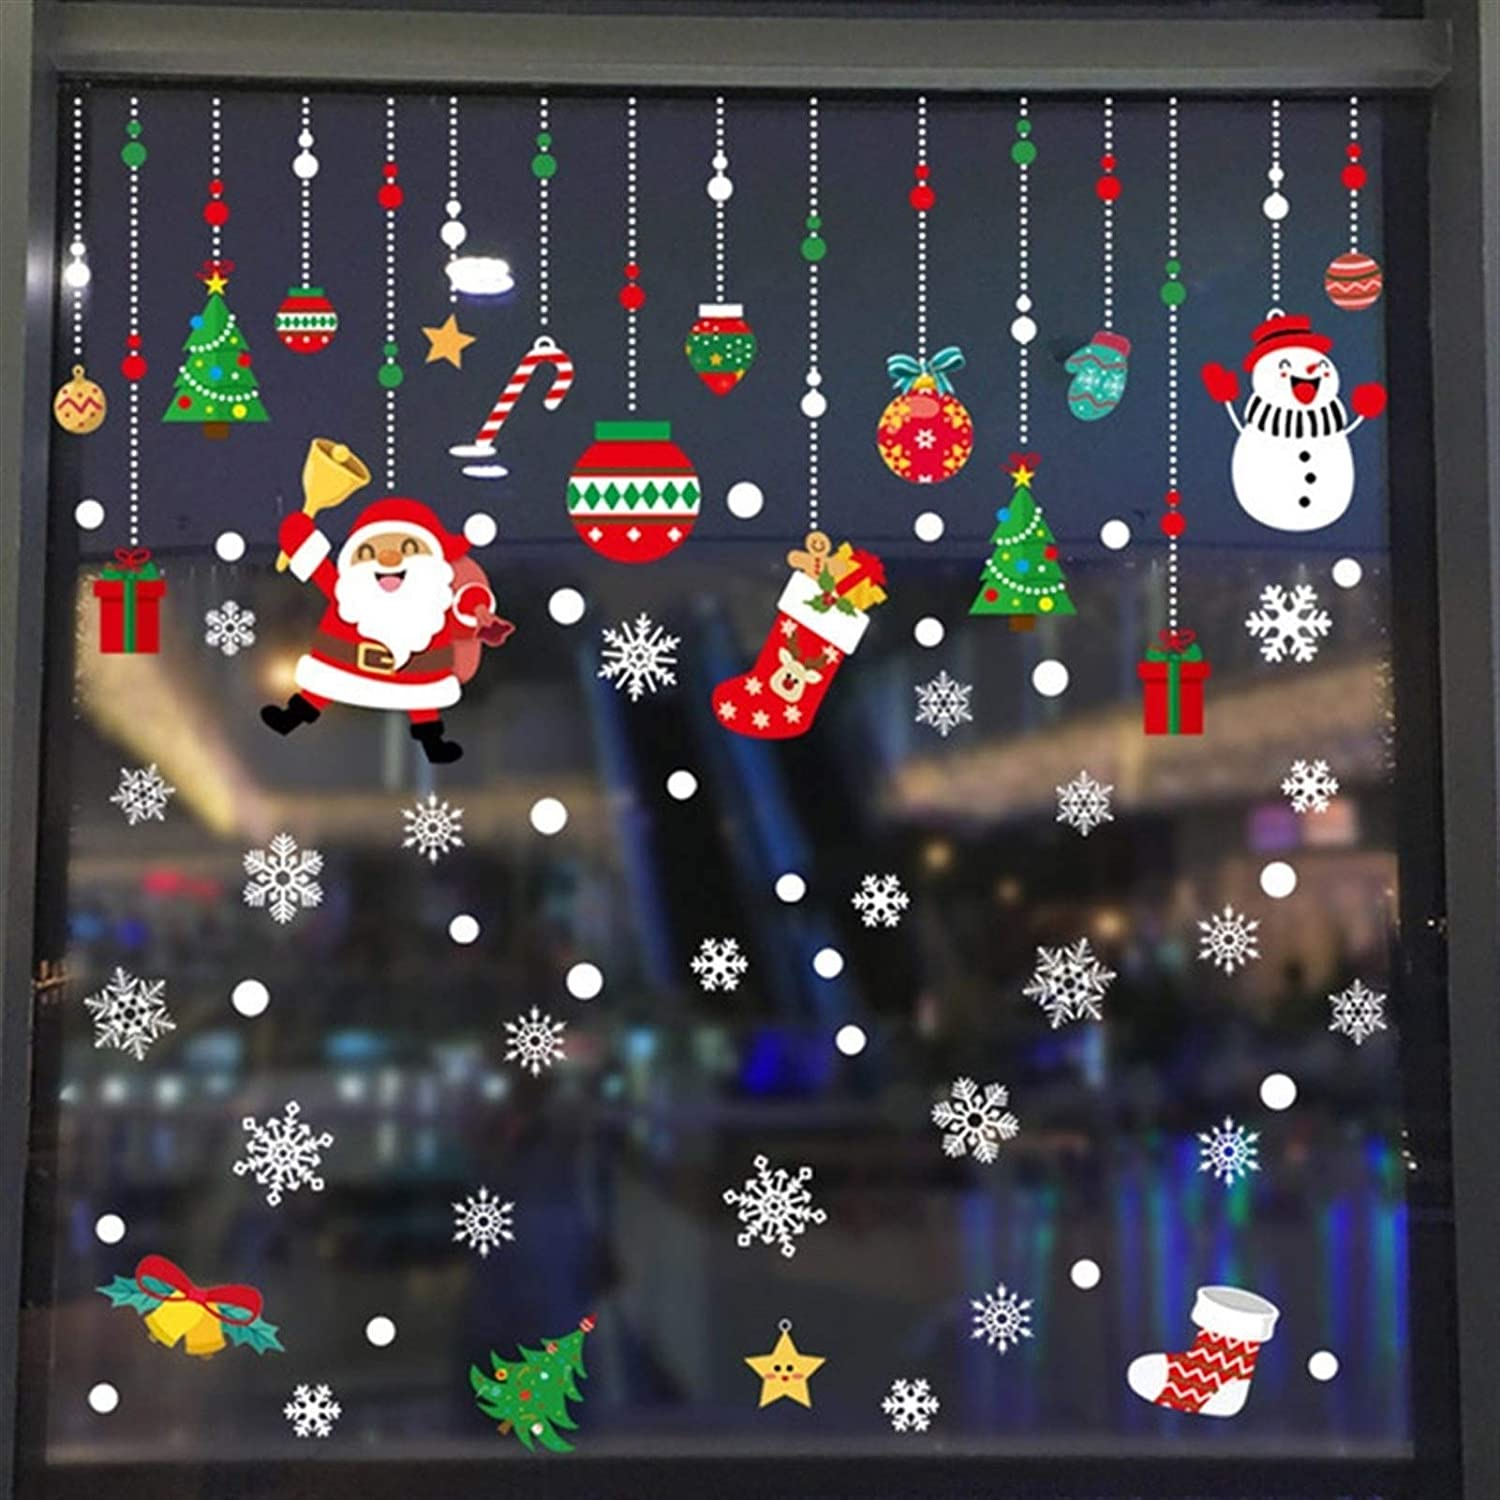 Color : 1 huoguo Christmas Window Stickers Merry Christmas Decorations for Home Wall Sticker Decal New Year Gift Xmas Decor